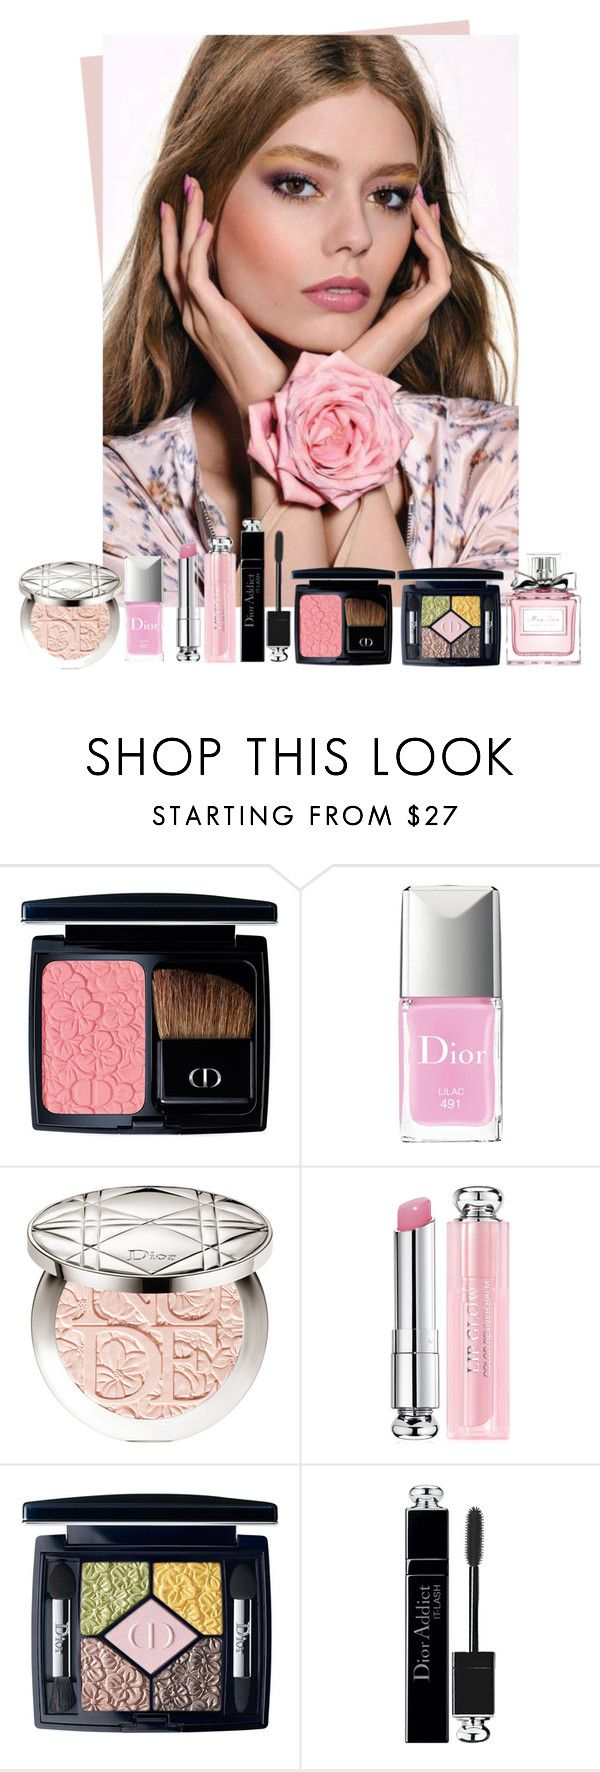 """Dior Glowing Gardens Collection 2016"" by sakuragirl ❤ liked on Polyvore featuring beauty, Christian Dior, Beauty, Dior, makeup and spring2016"